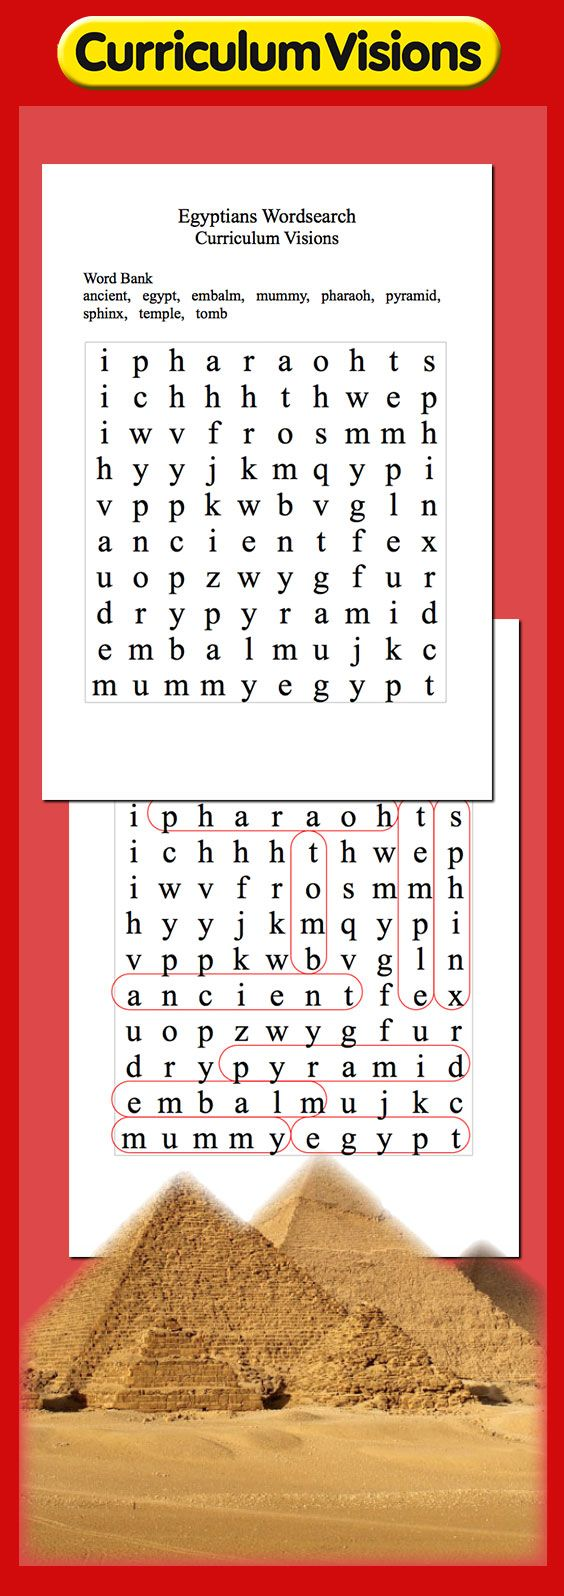 Curriculum Visions Ancient Egyptian wordsearch puzzle